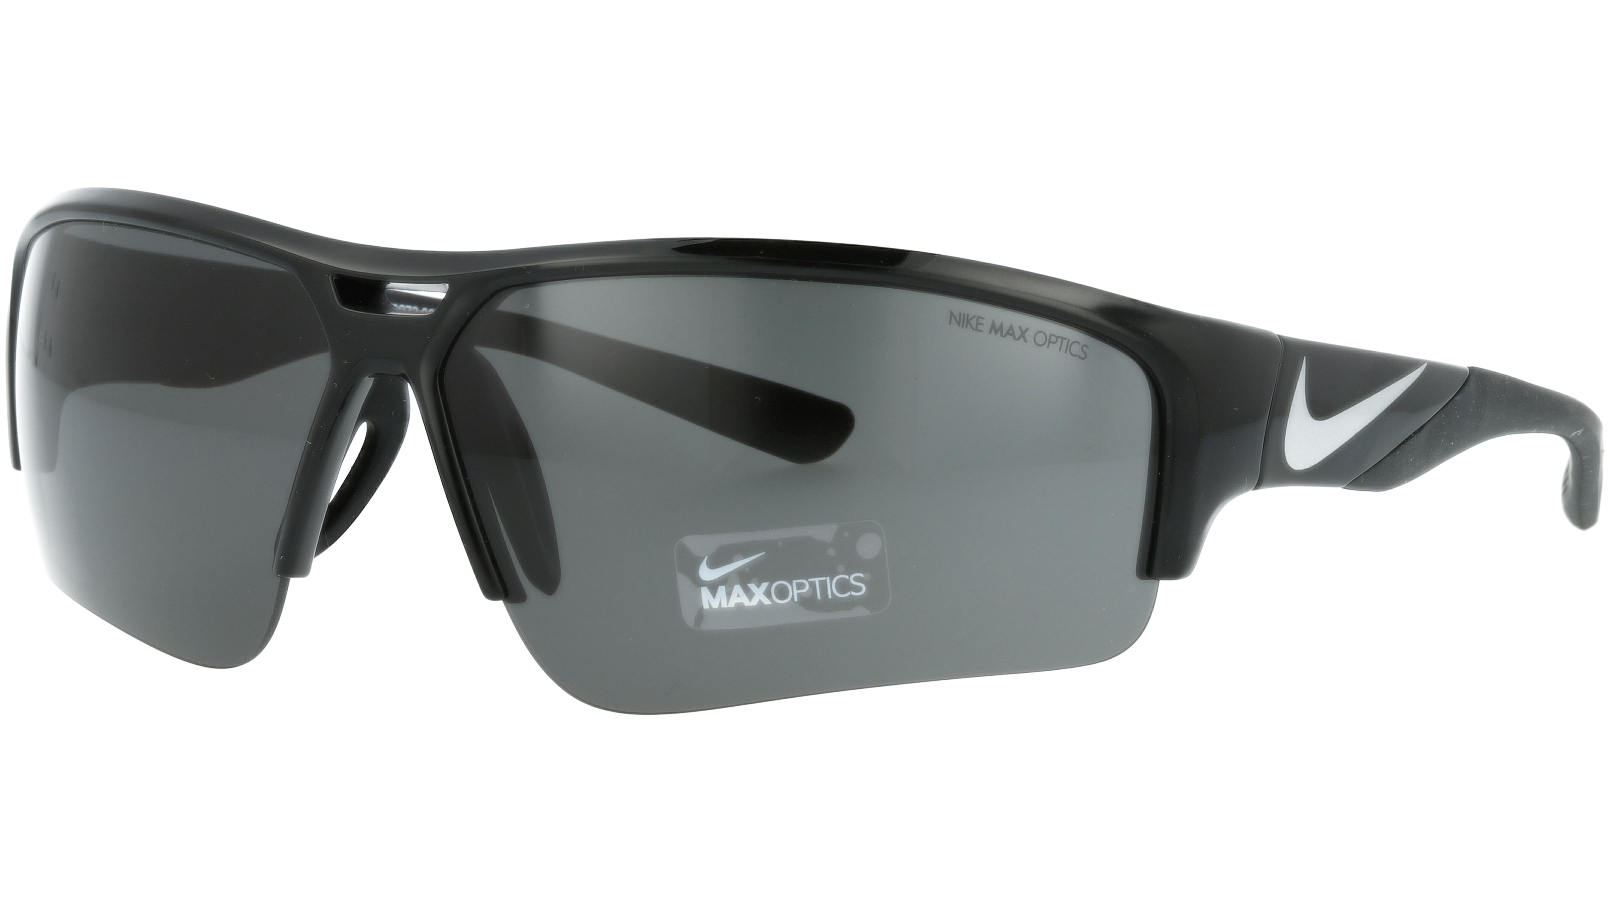 NIKE EV0872 001 70 BLACK Sunglasses